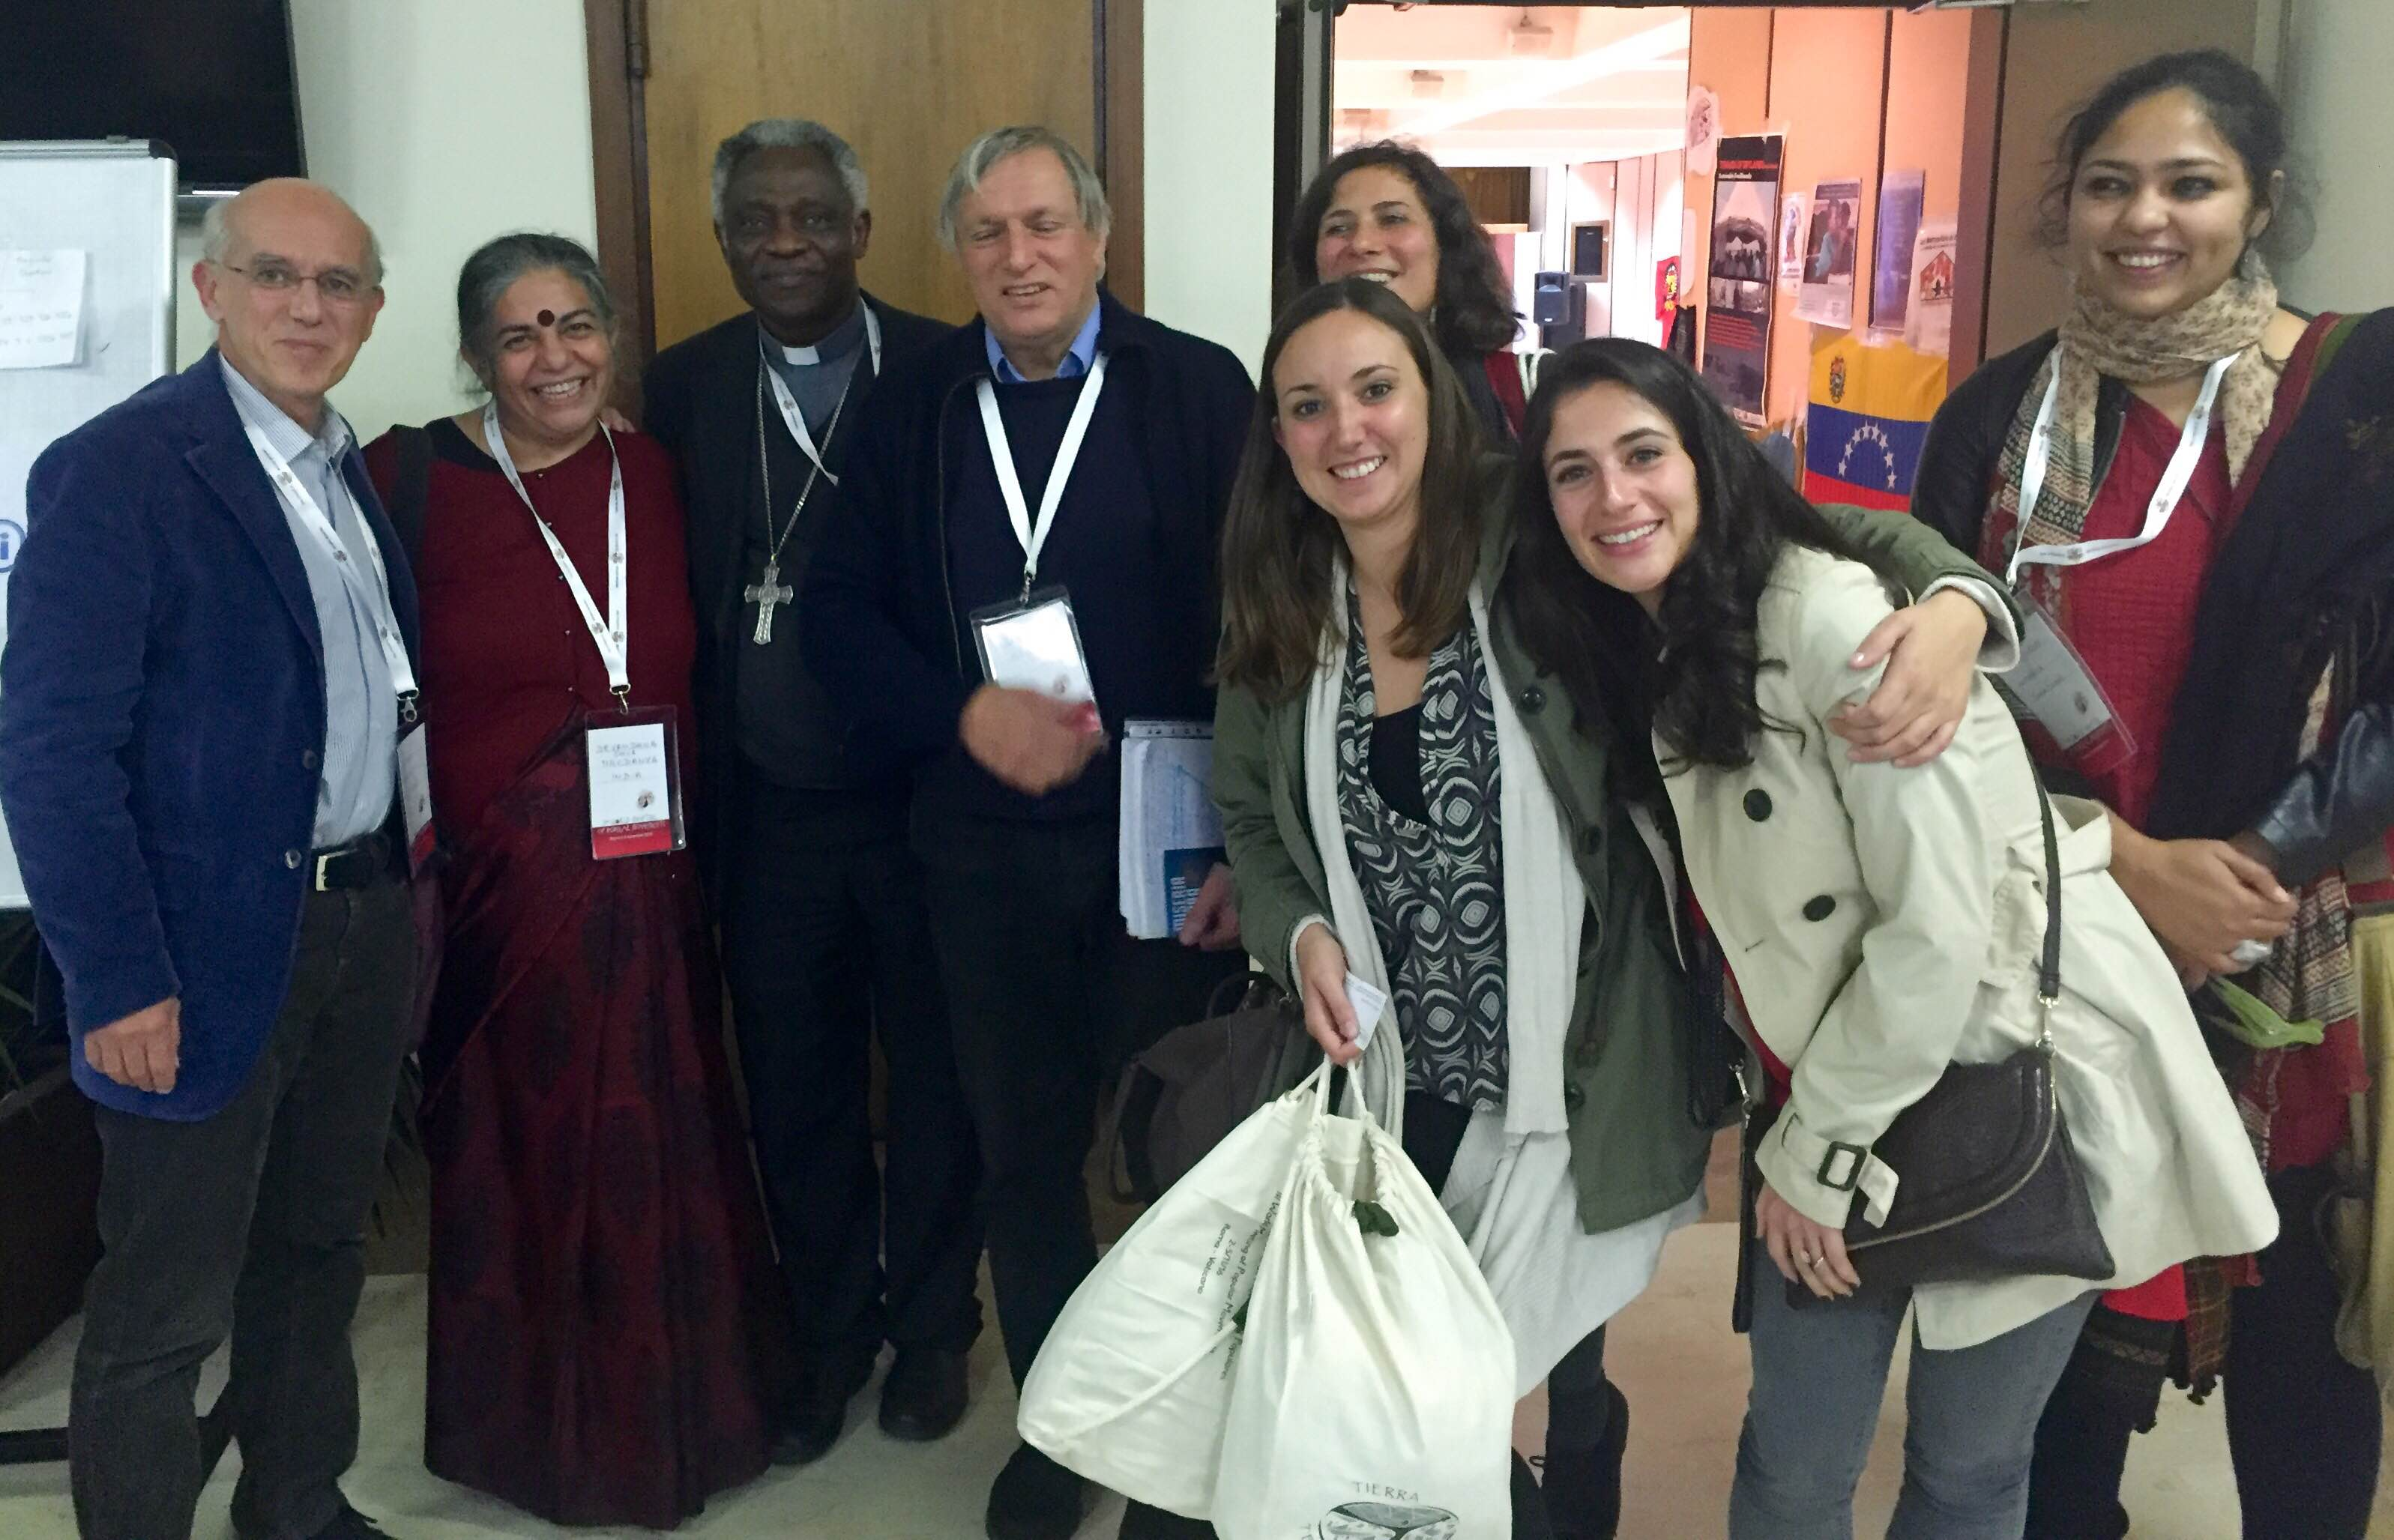 Dr Vandana Shiva and Ruchi Shroff of Navdanya, with Don Luigi Ciotti and Cardinal Turkson